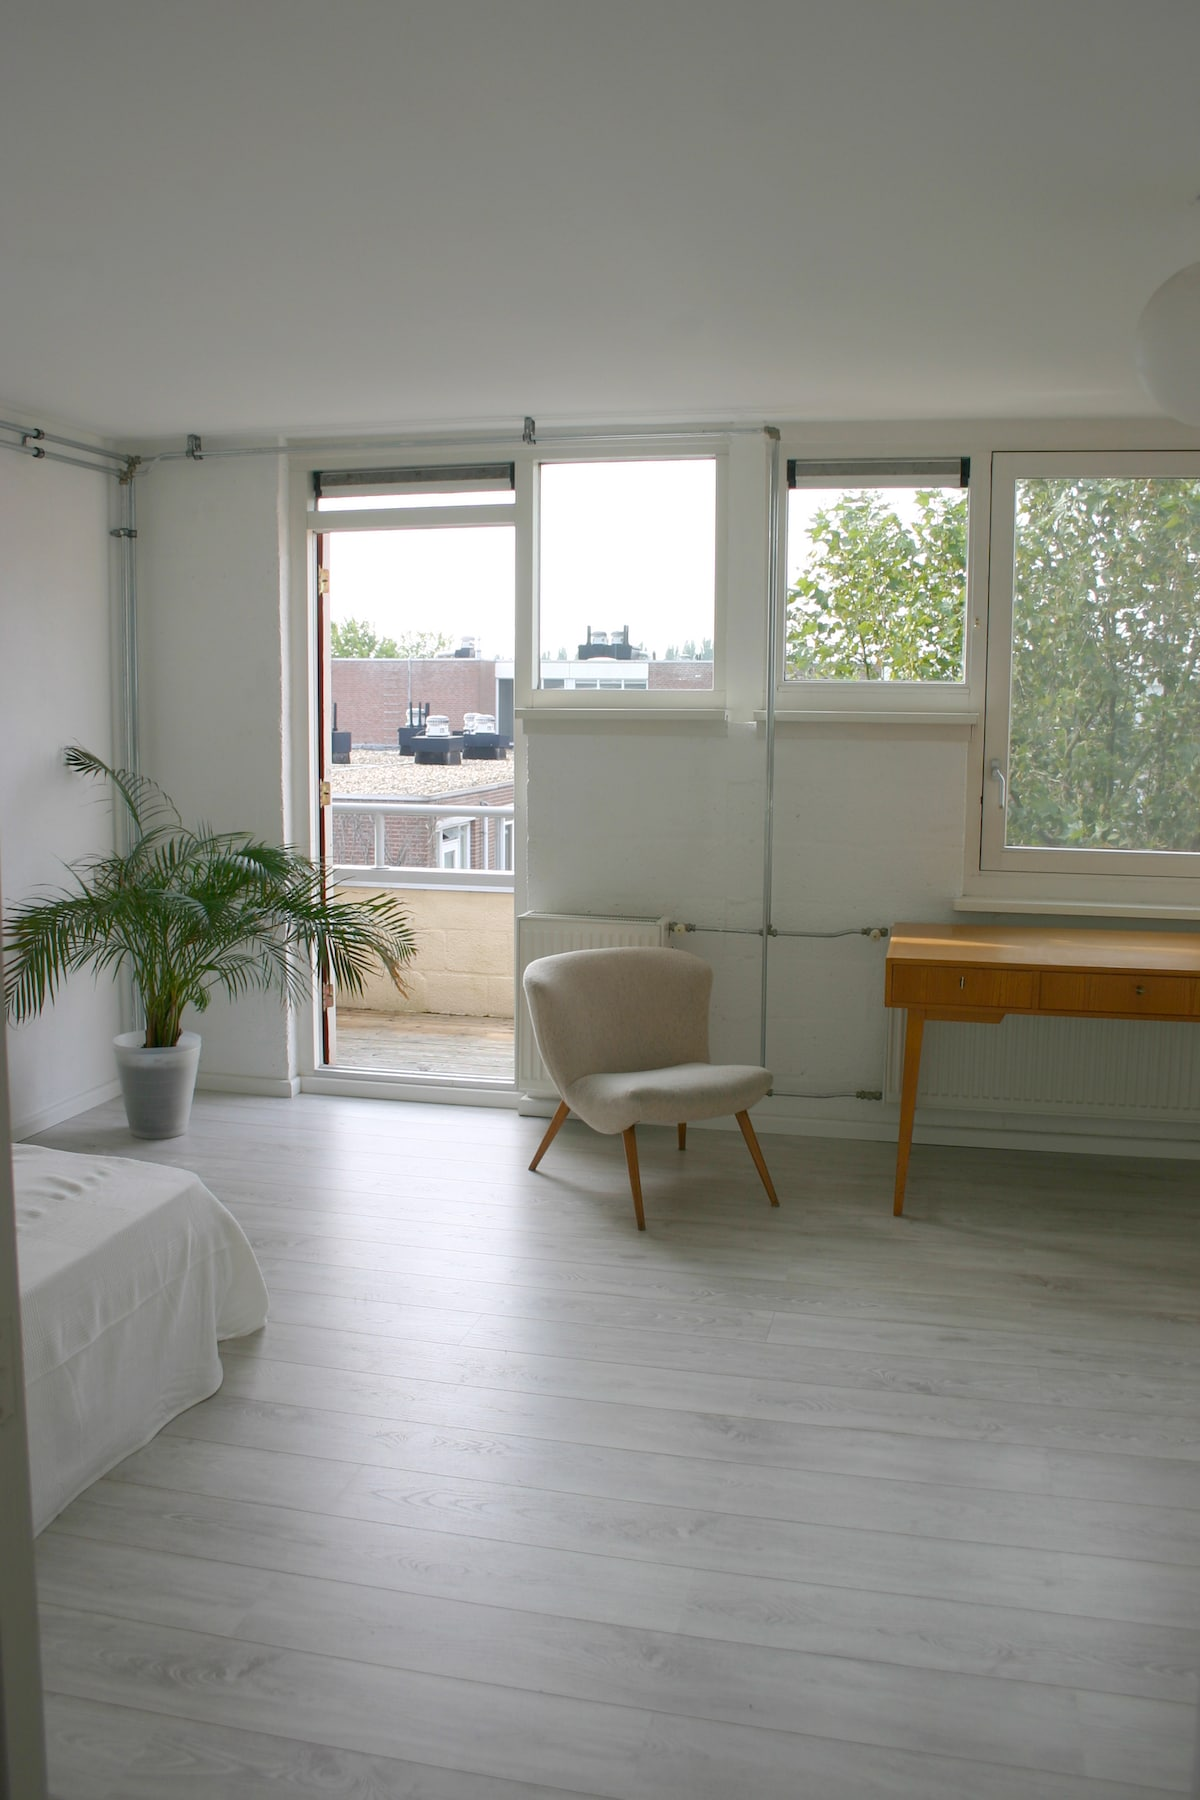 nice light clean and central room